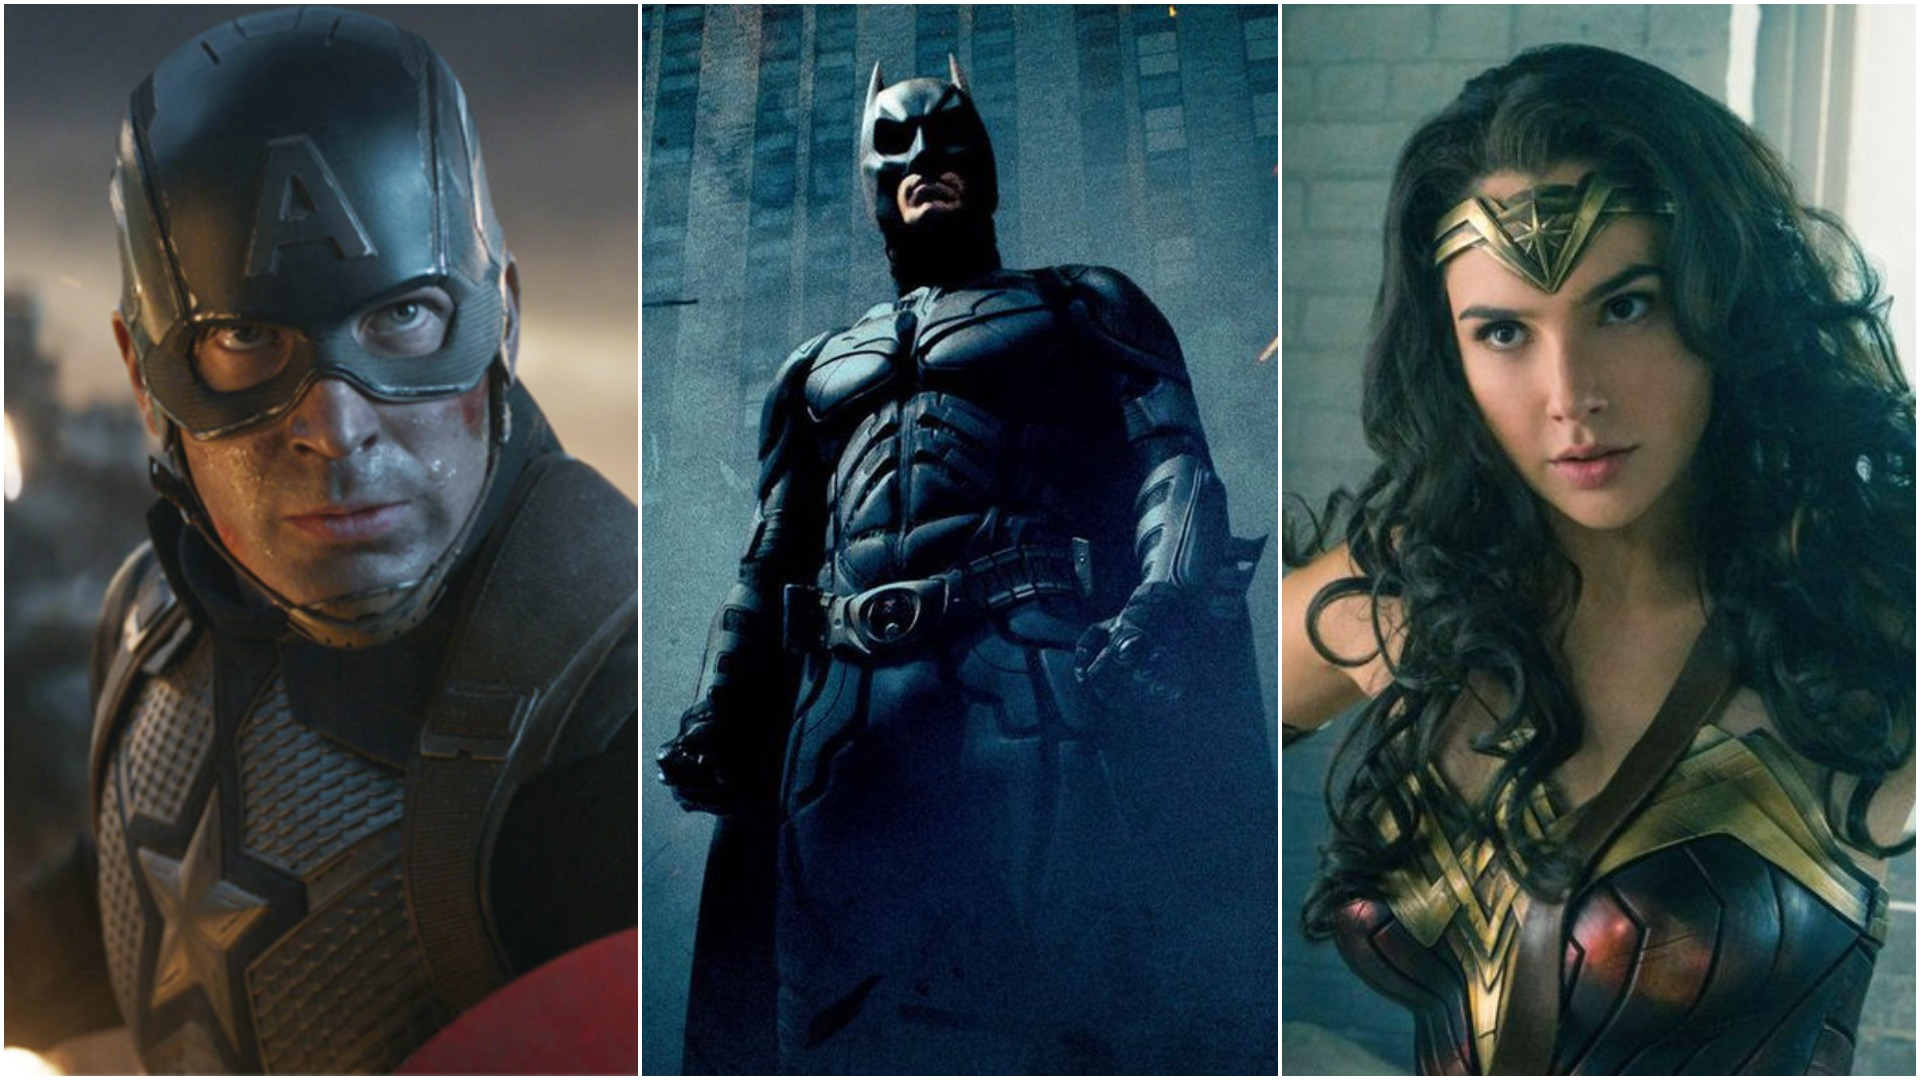 The 25 best superhero movies of all time, ranked! From